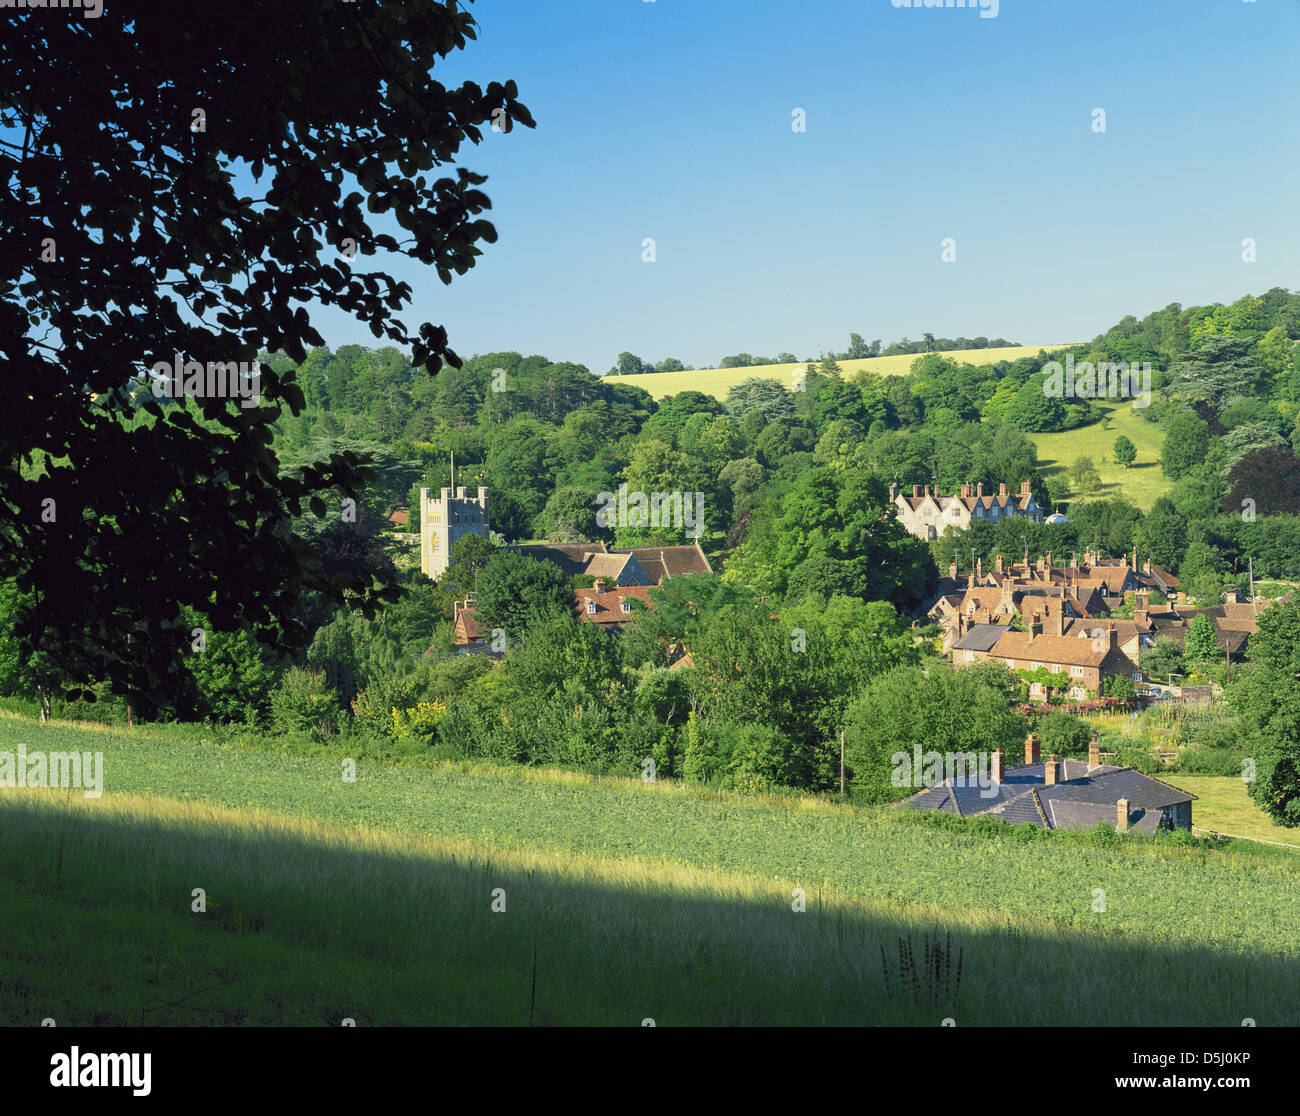 THE CHILTERNS: HAMBLEDEN: BUCKINGHAMSHIRE: ENGLAND - Stock Image